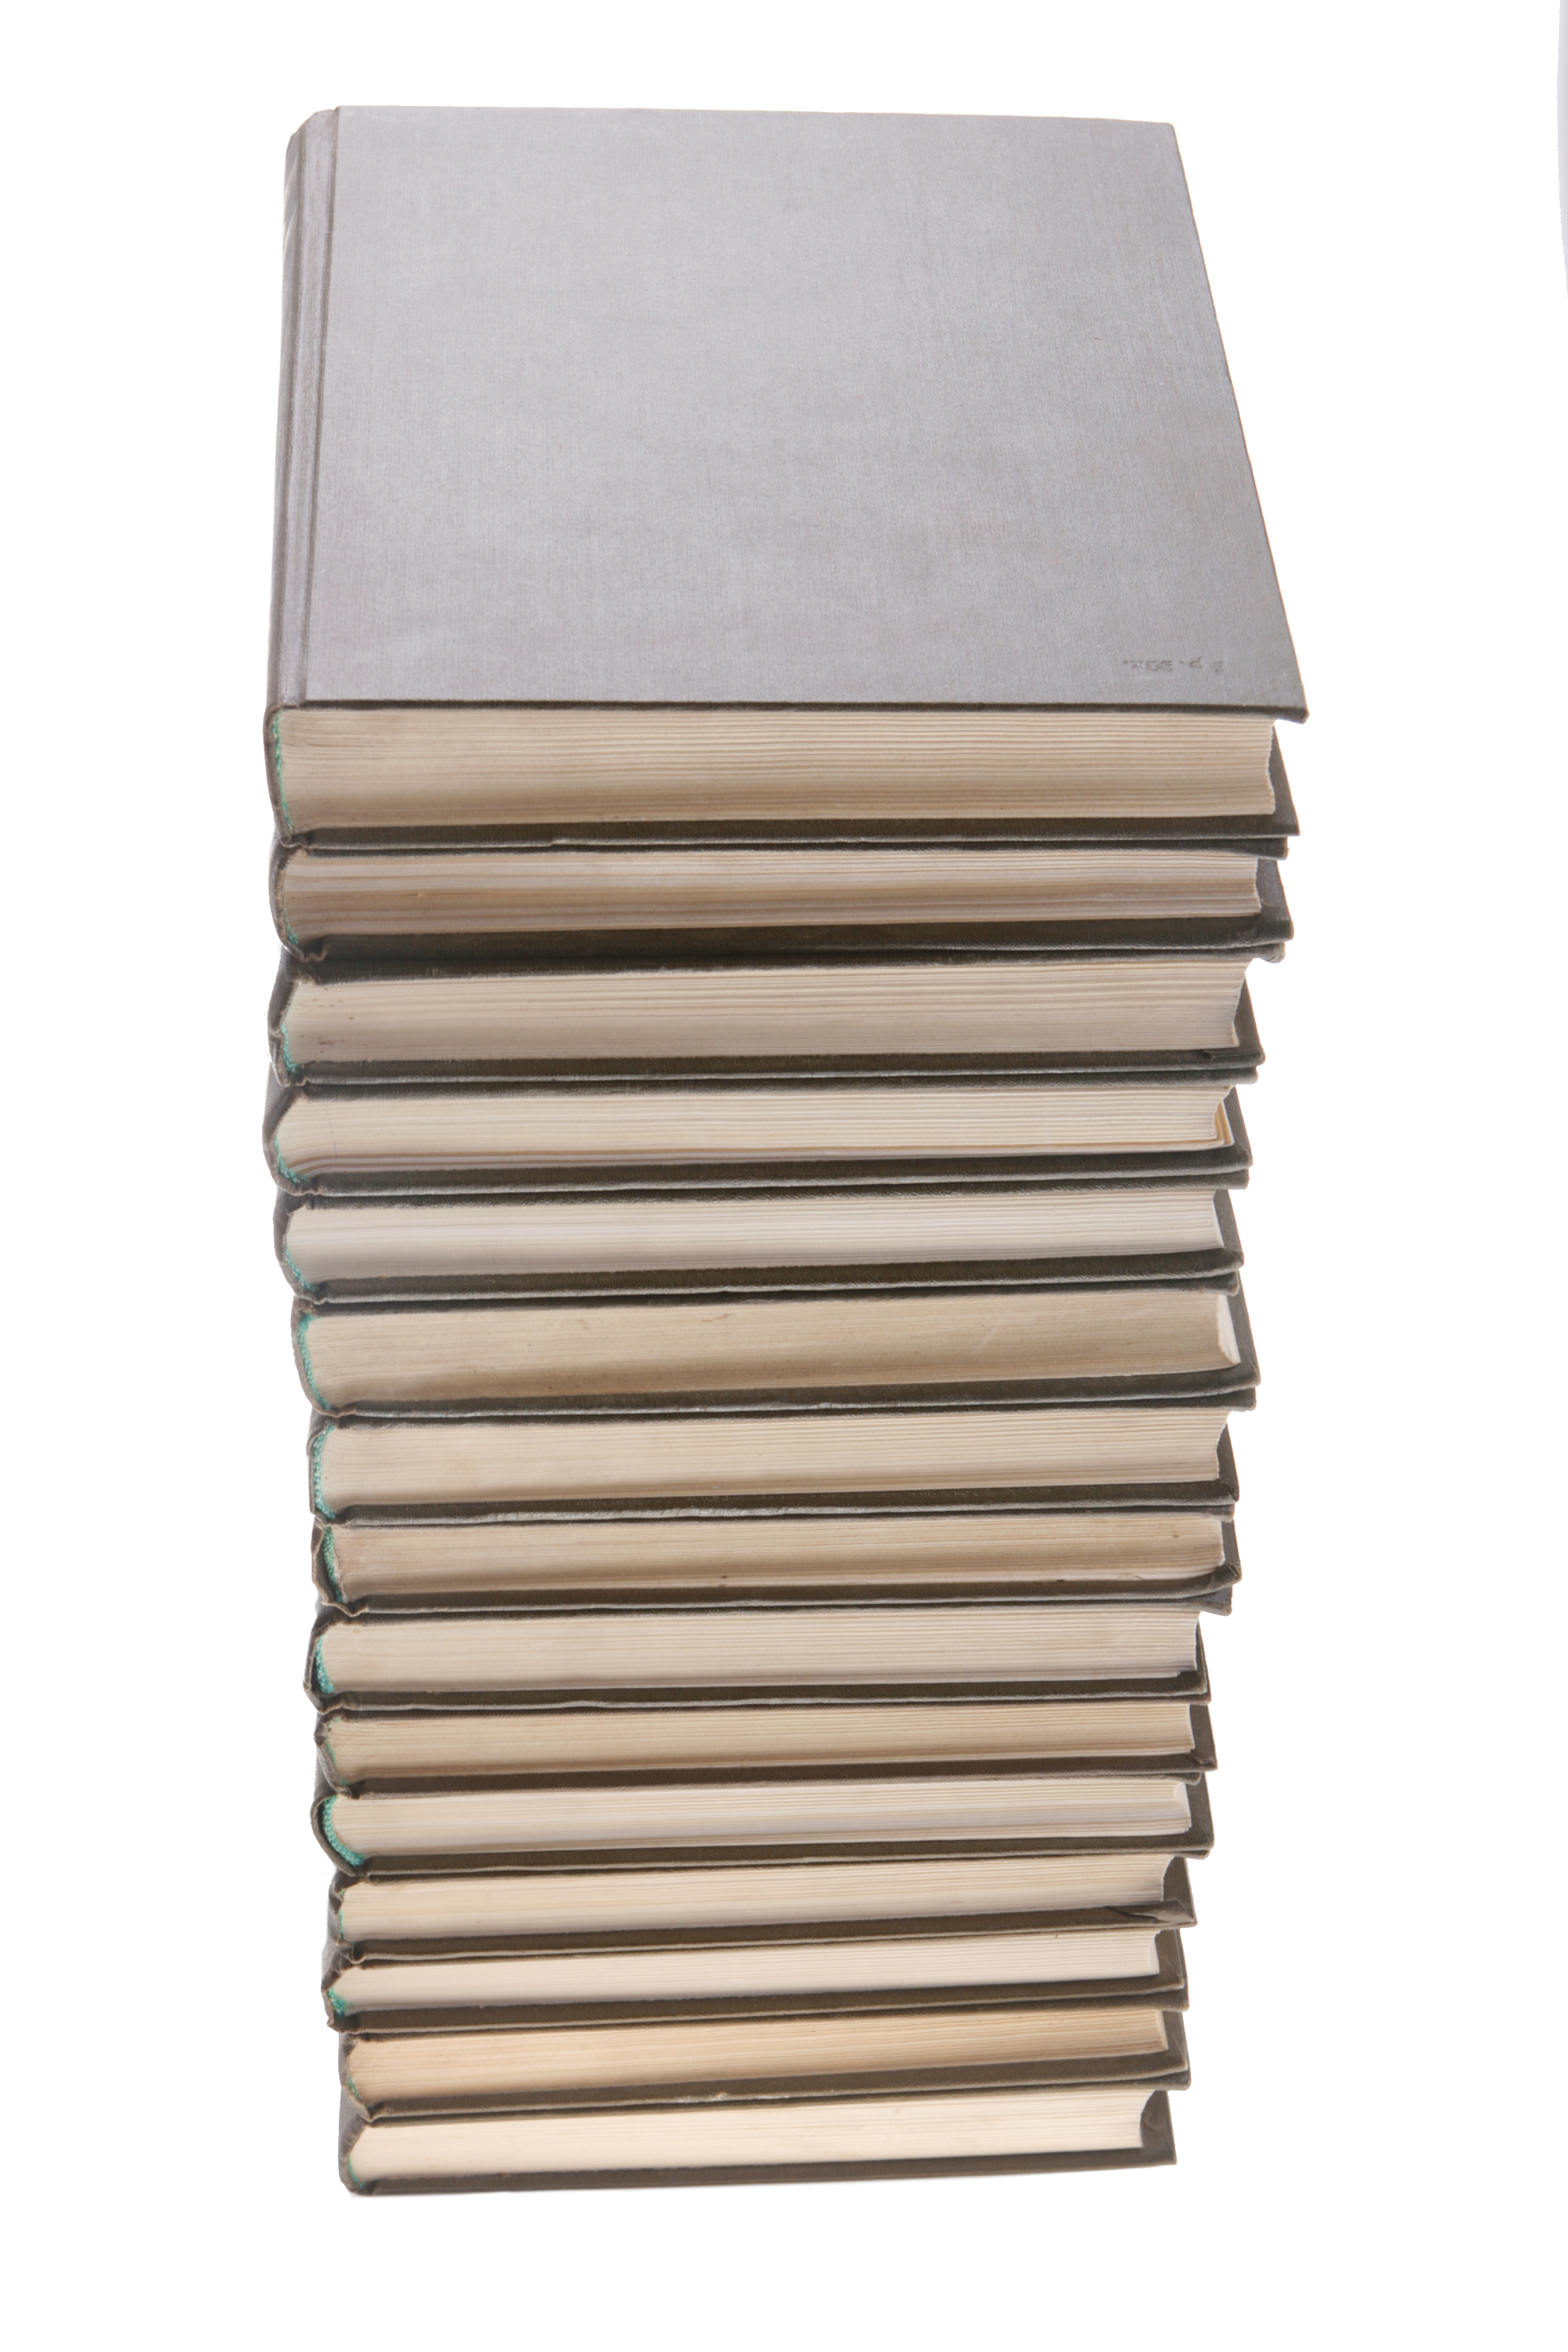 Books isolated, Literature, Knowledge, Stack, Textbook, HQ Photo